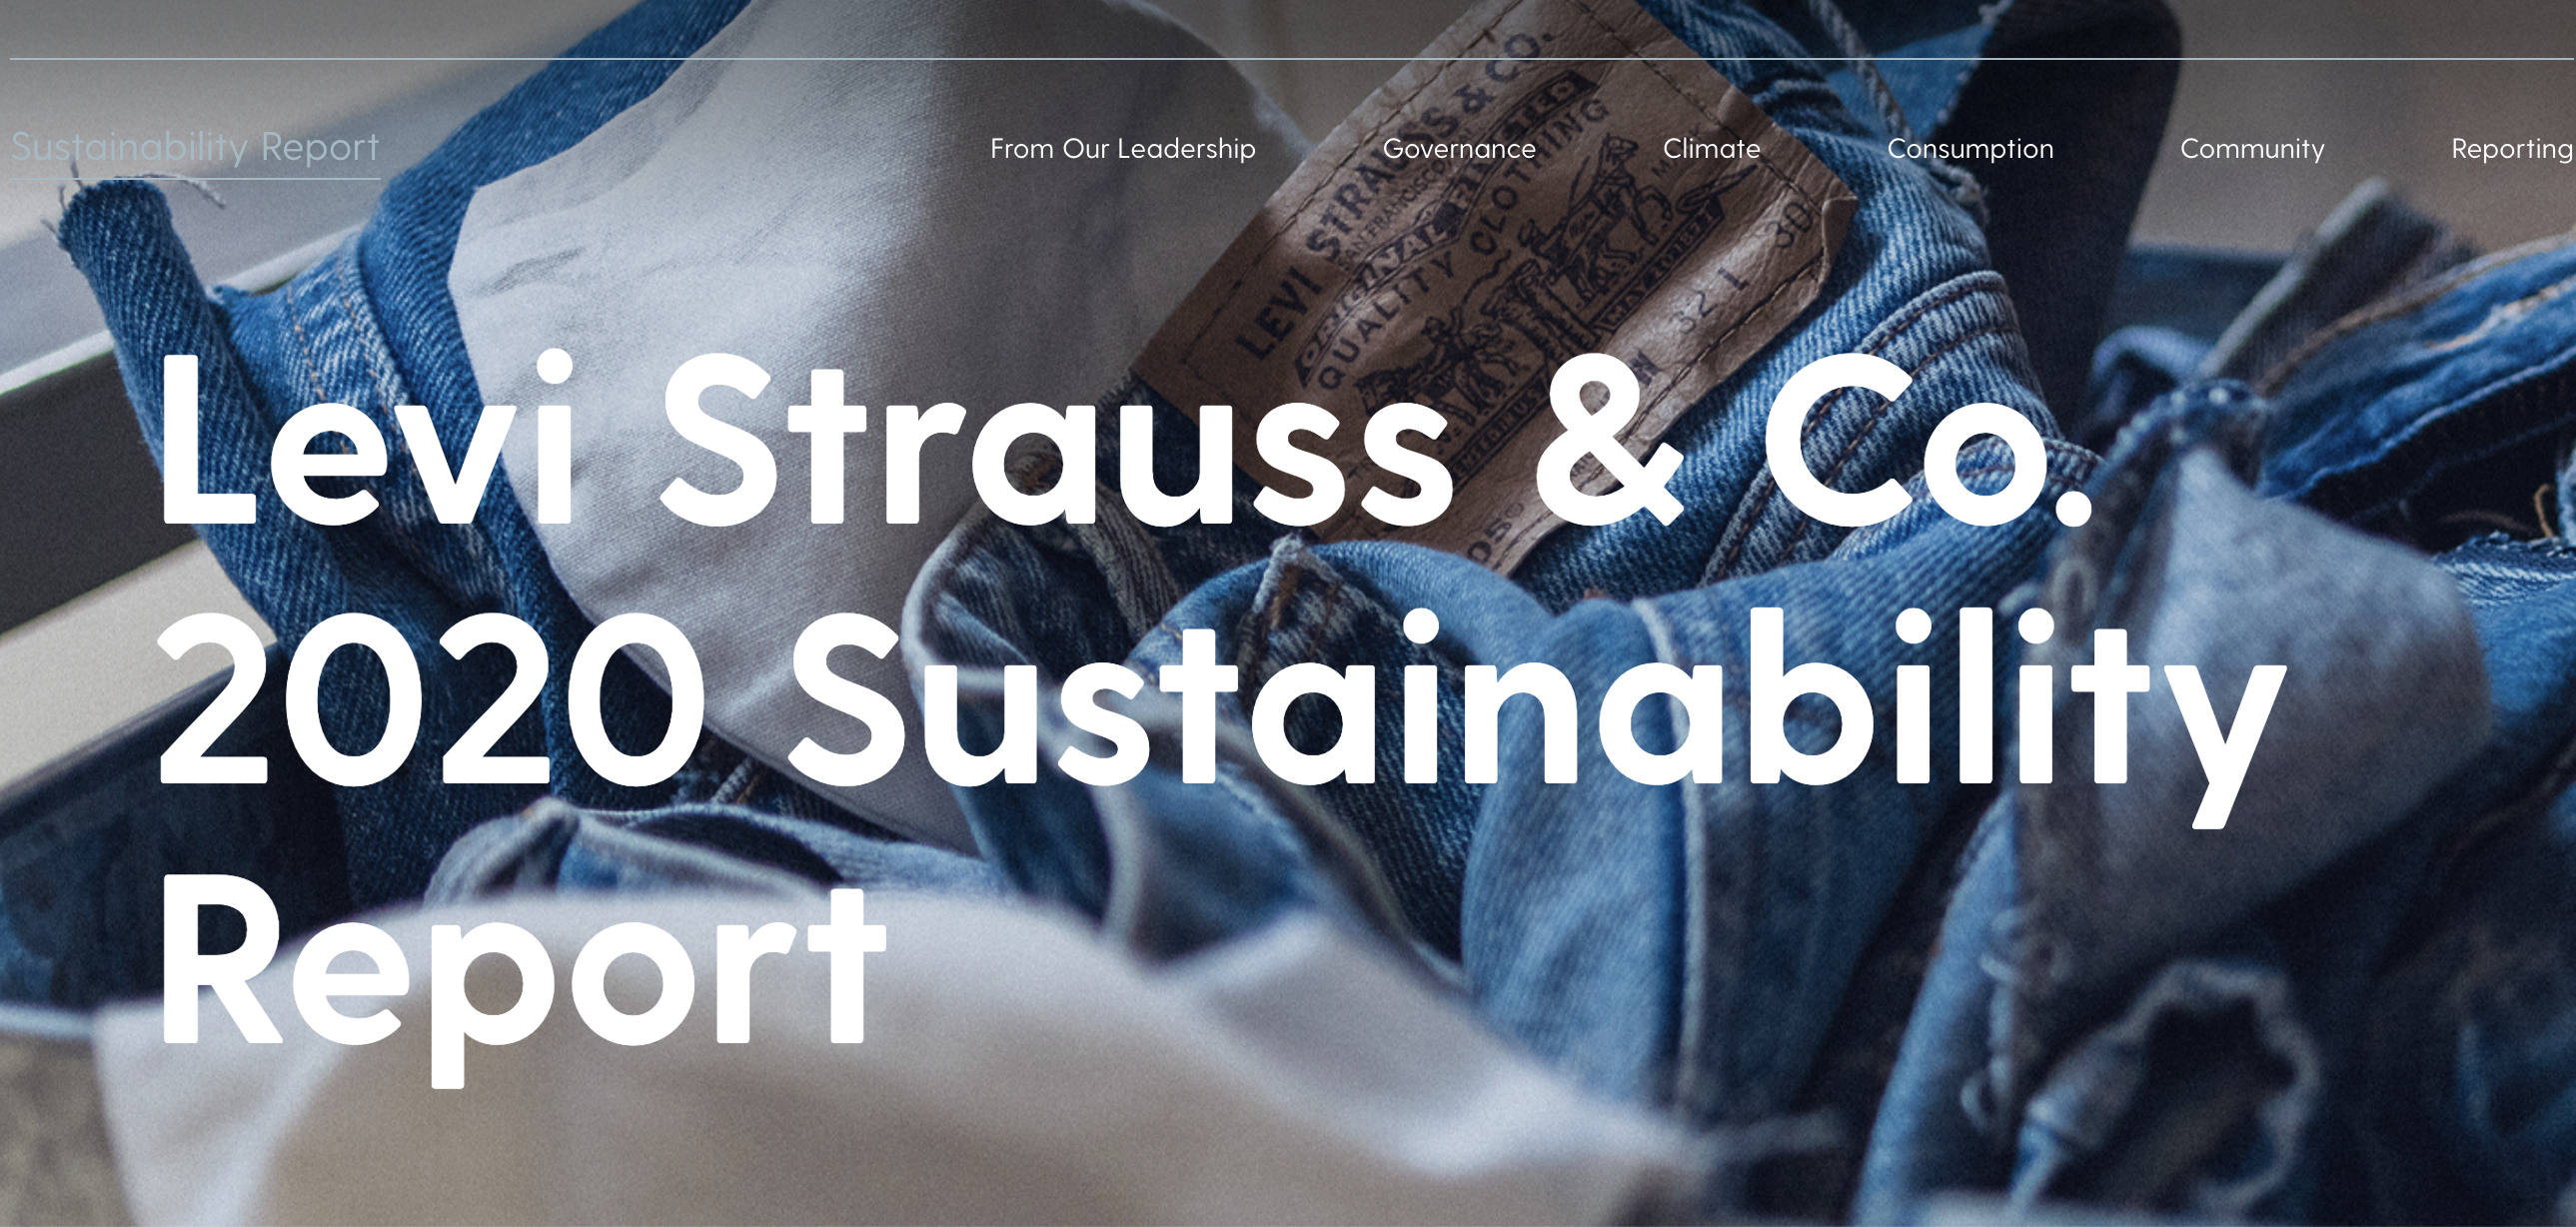 Levi Strauss & Co. 2020 Sustainability Report